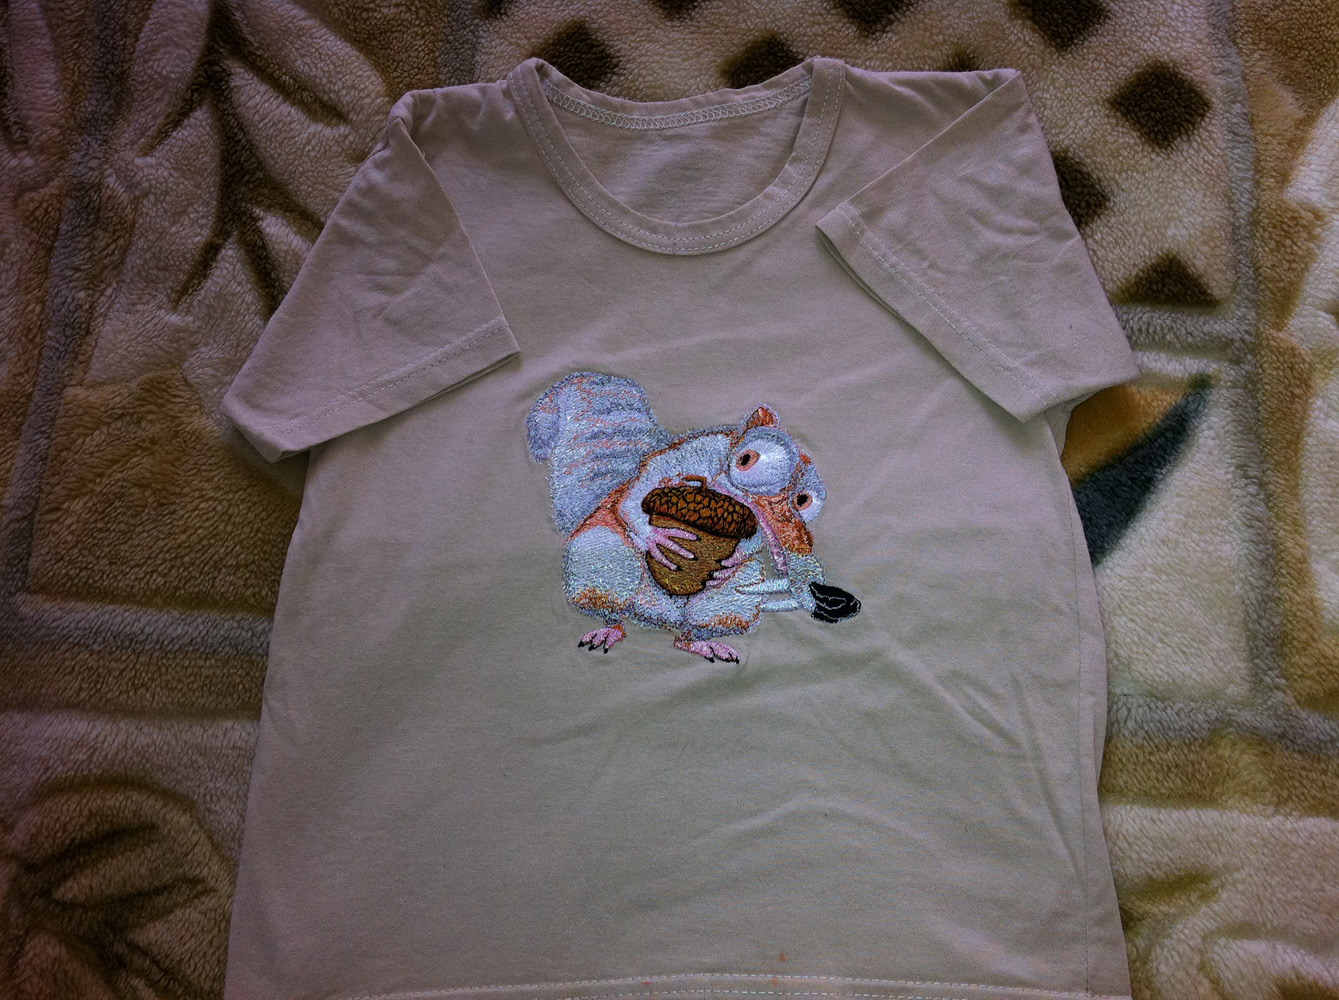 Beige embroidered t-shirt with Scrat